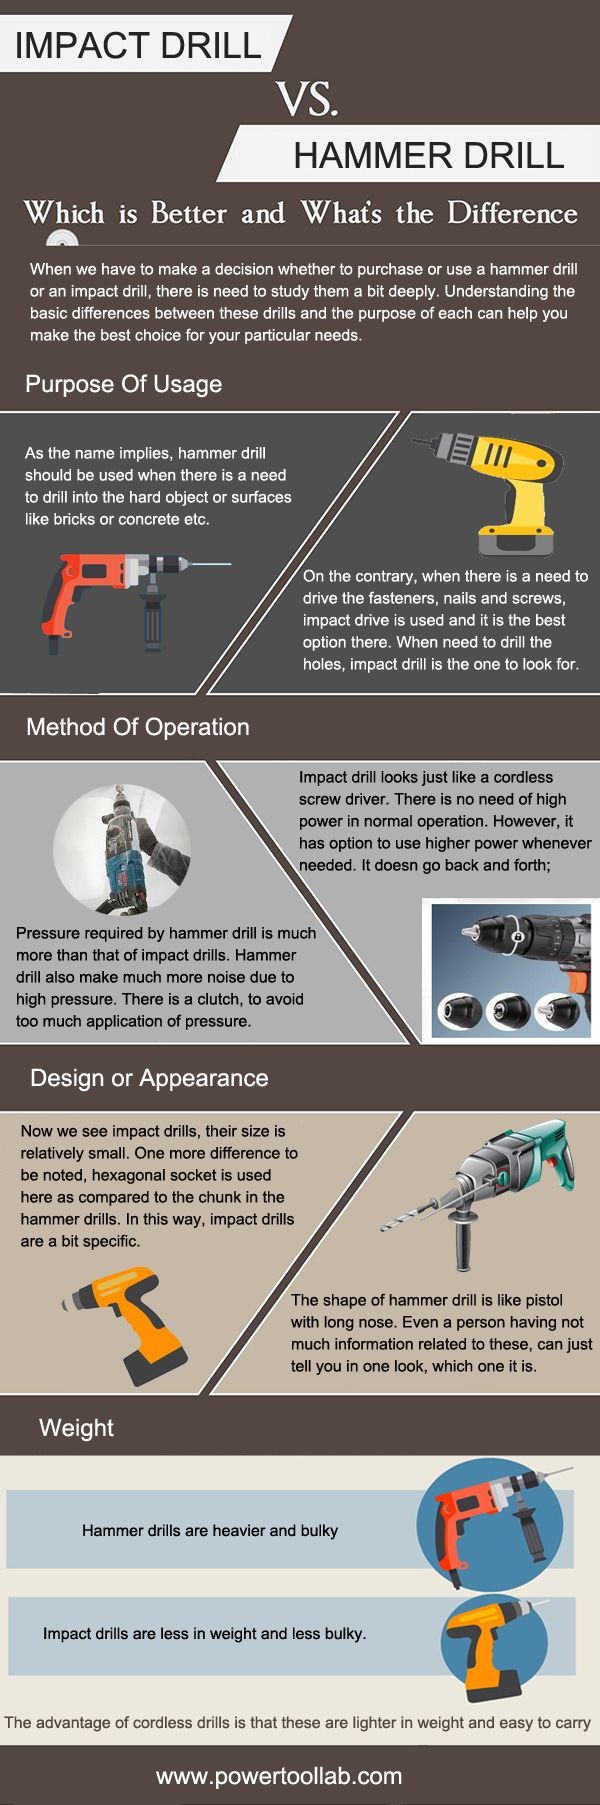 Impact Drill vs Hammer Drill what is the difference